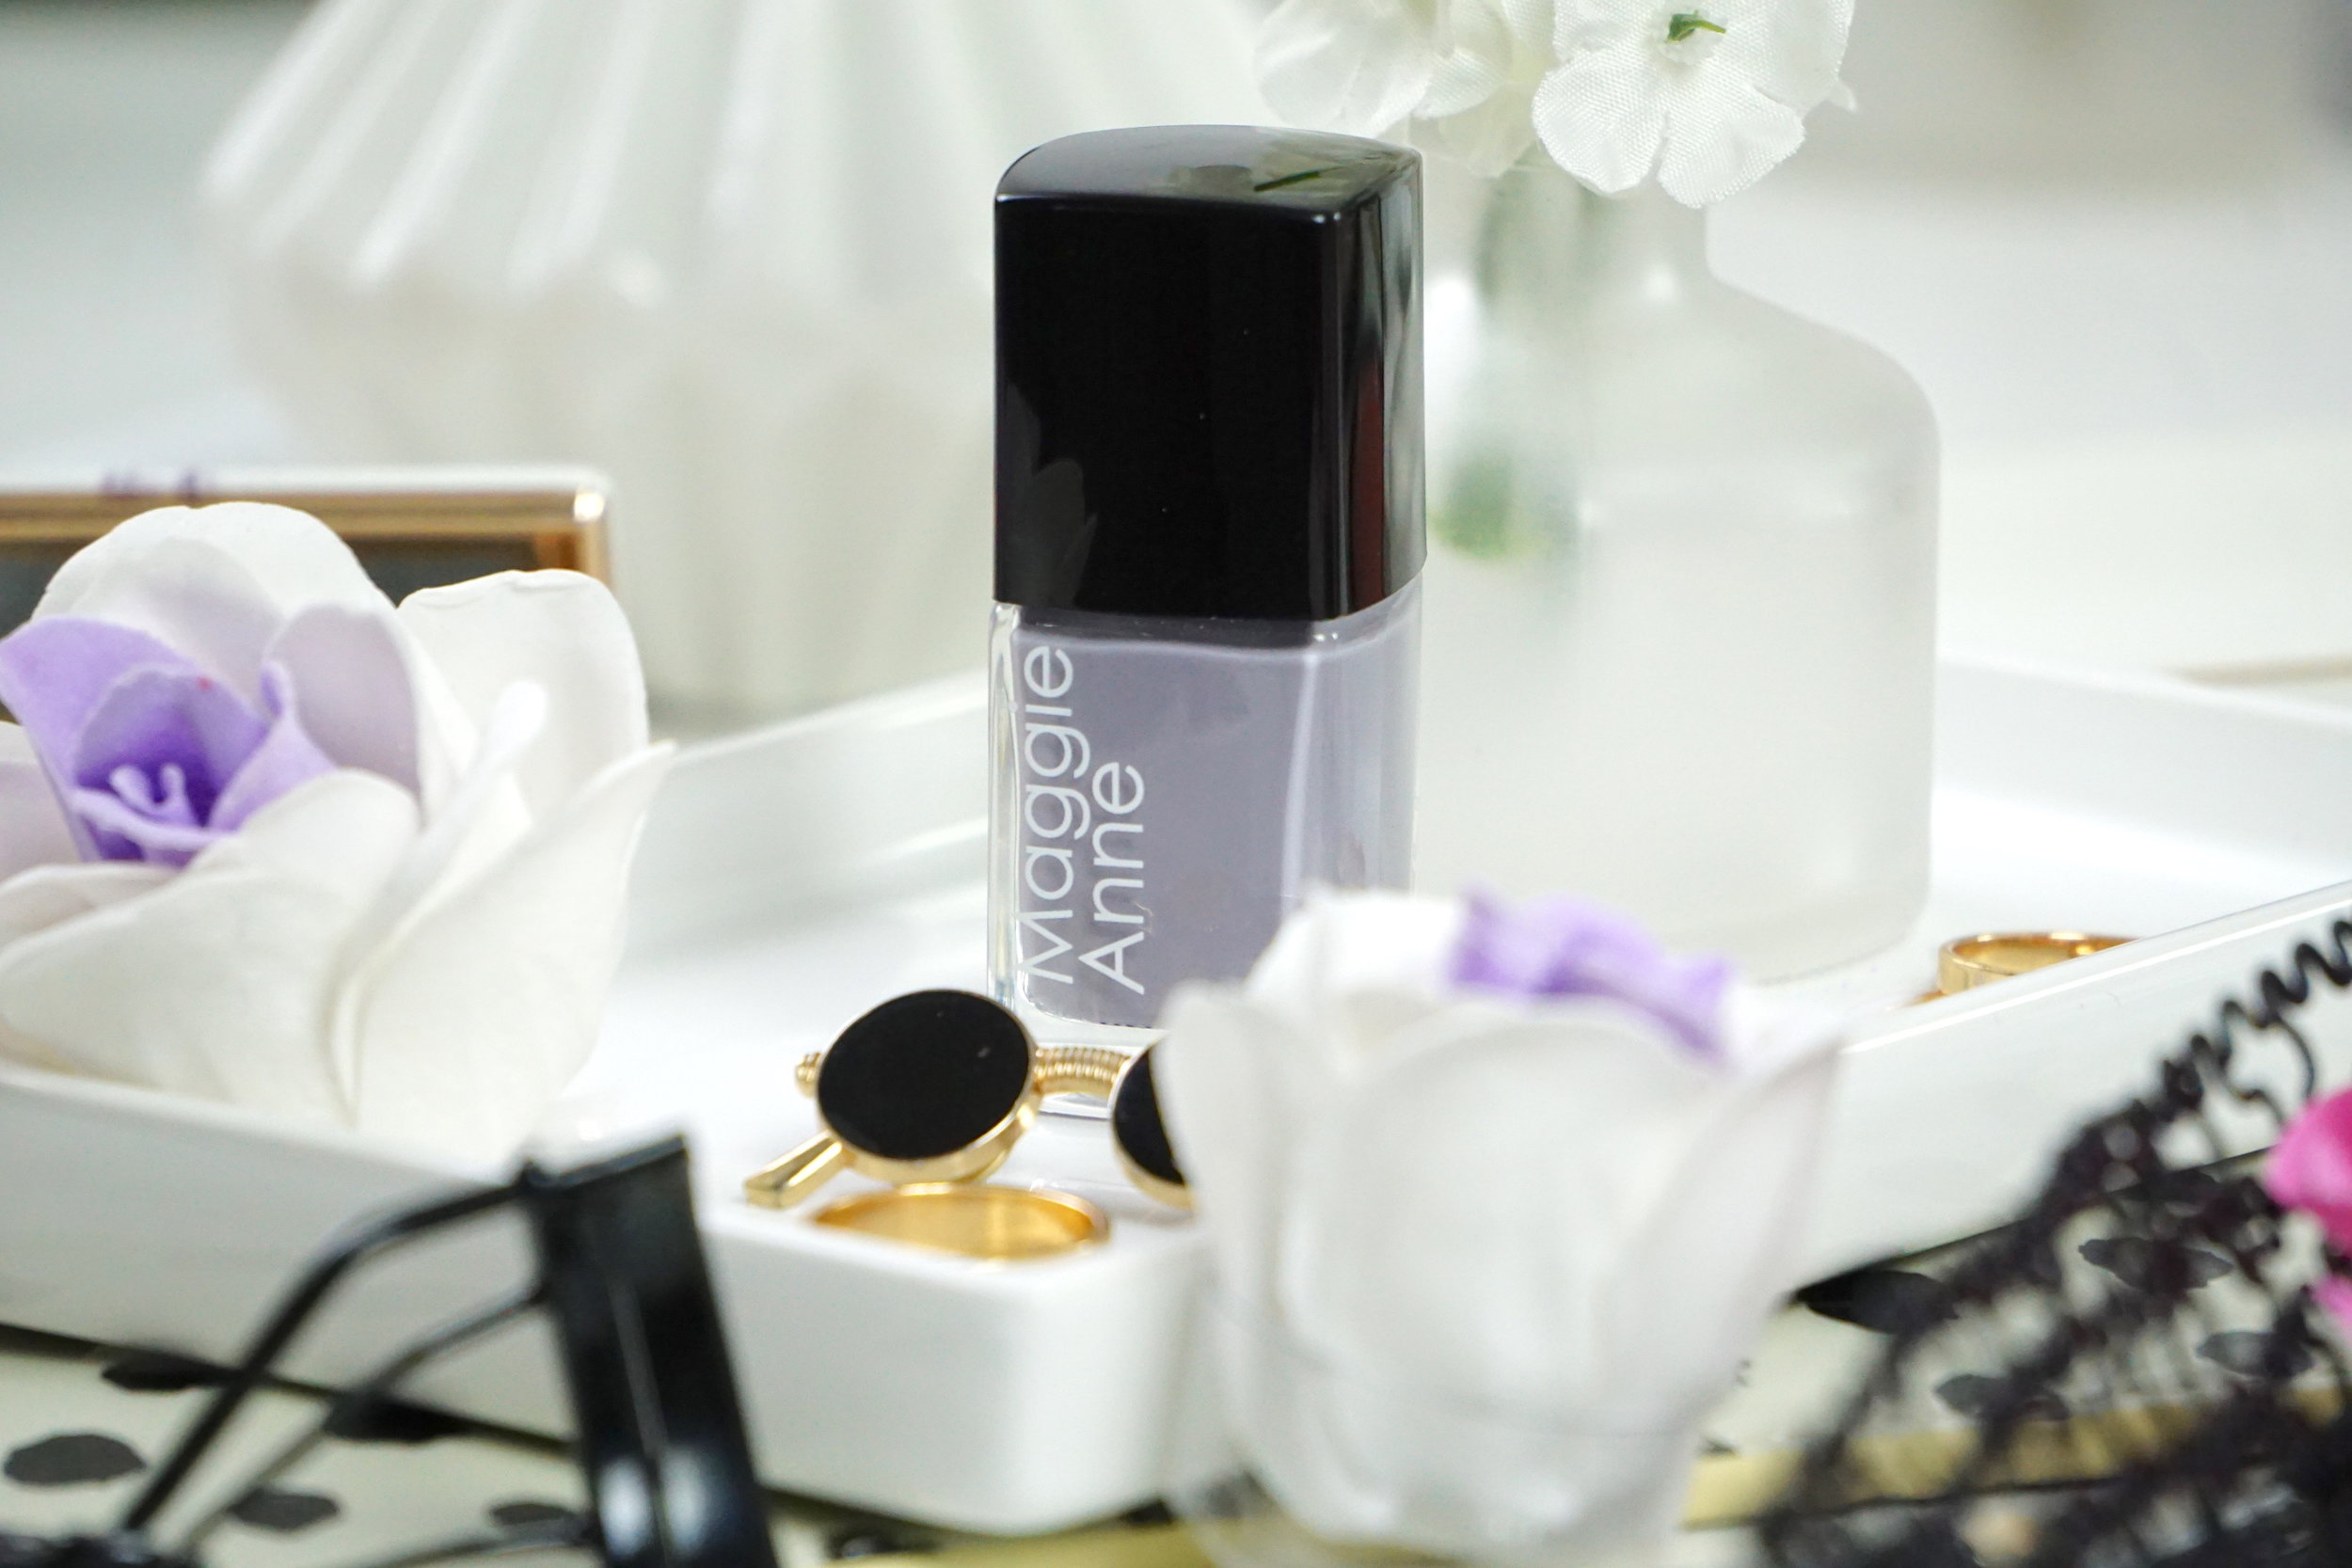 Maggie AnneNail Polish - Shade: UndaMaggie Anne is the very first non-toxic and vegan brand of nail polish I discovered since moving to a more conscious beauty regime. Non-toxic nail polish means it's free of artificial chemicals (toxins) that are commonly found in most nail polishes (Tulene, Dibutyl and Phthalates) and these really aren't going to do the health of your nails any favours, especially if you wear varnish regularly like I do. Maggie Anne name all their colours with actual names and here we have 'Unda' and isn't she just so classy and elegant? The consistency is really easy to apply too and leaves such even coverage with no streaks This will go with anything and I think I'll even do my toes, too.